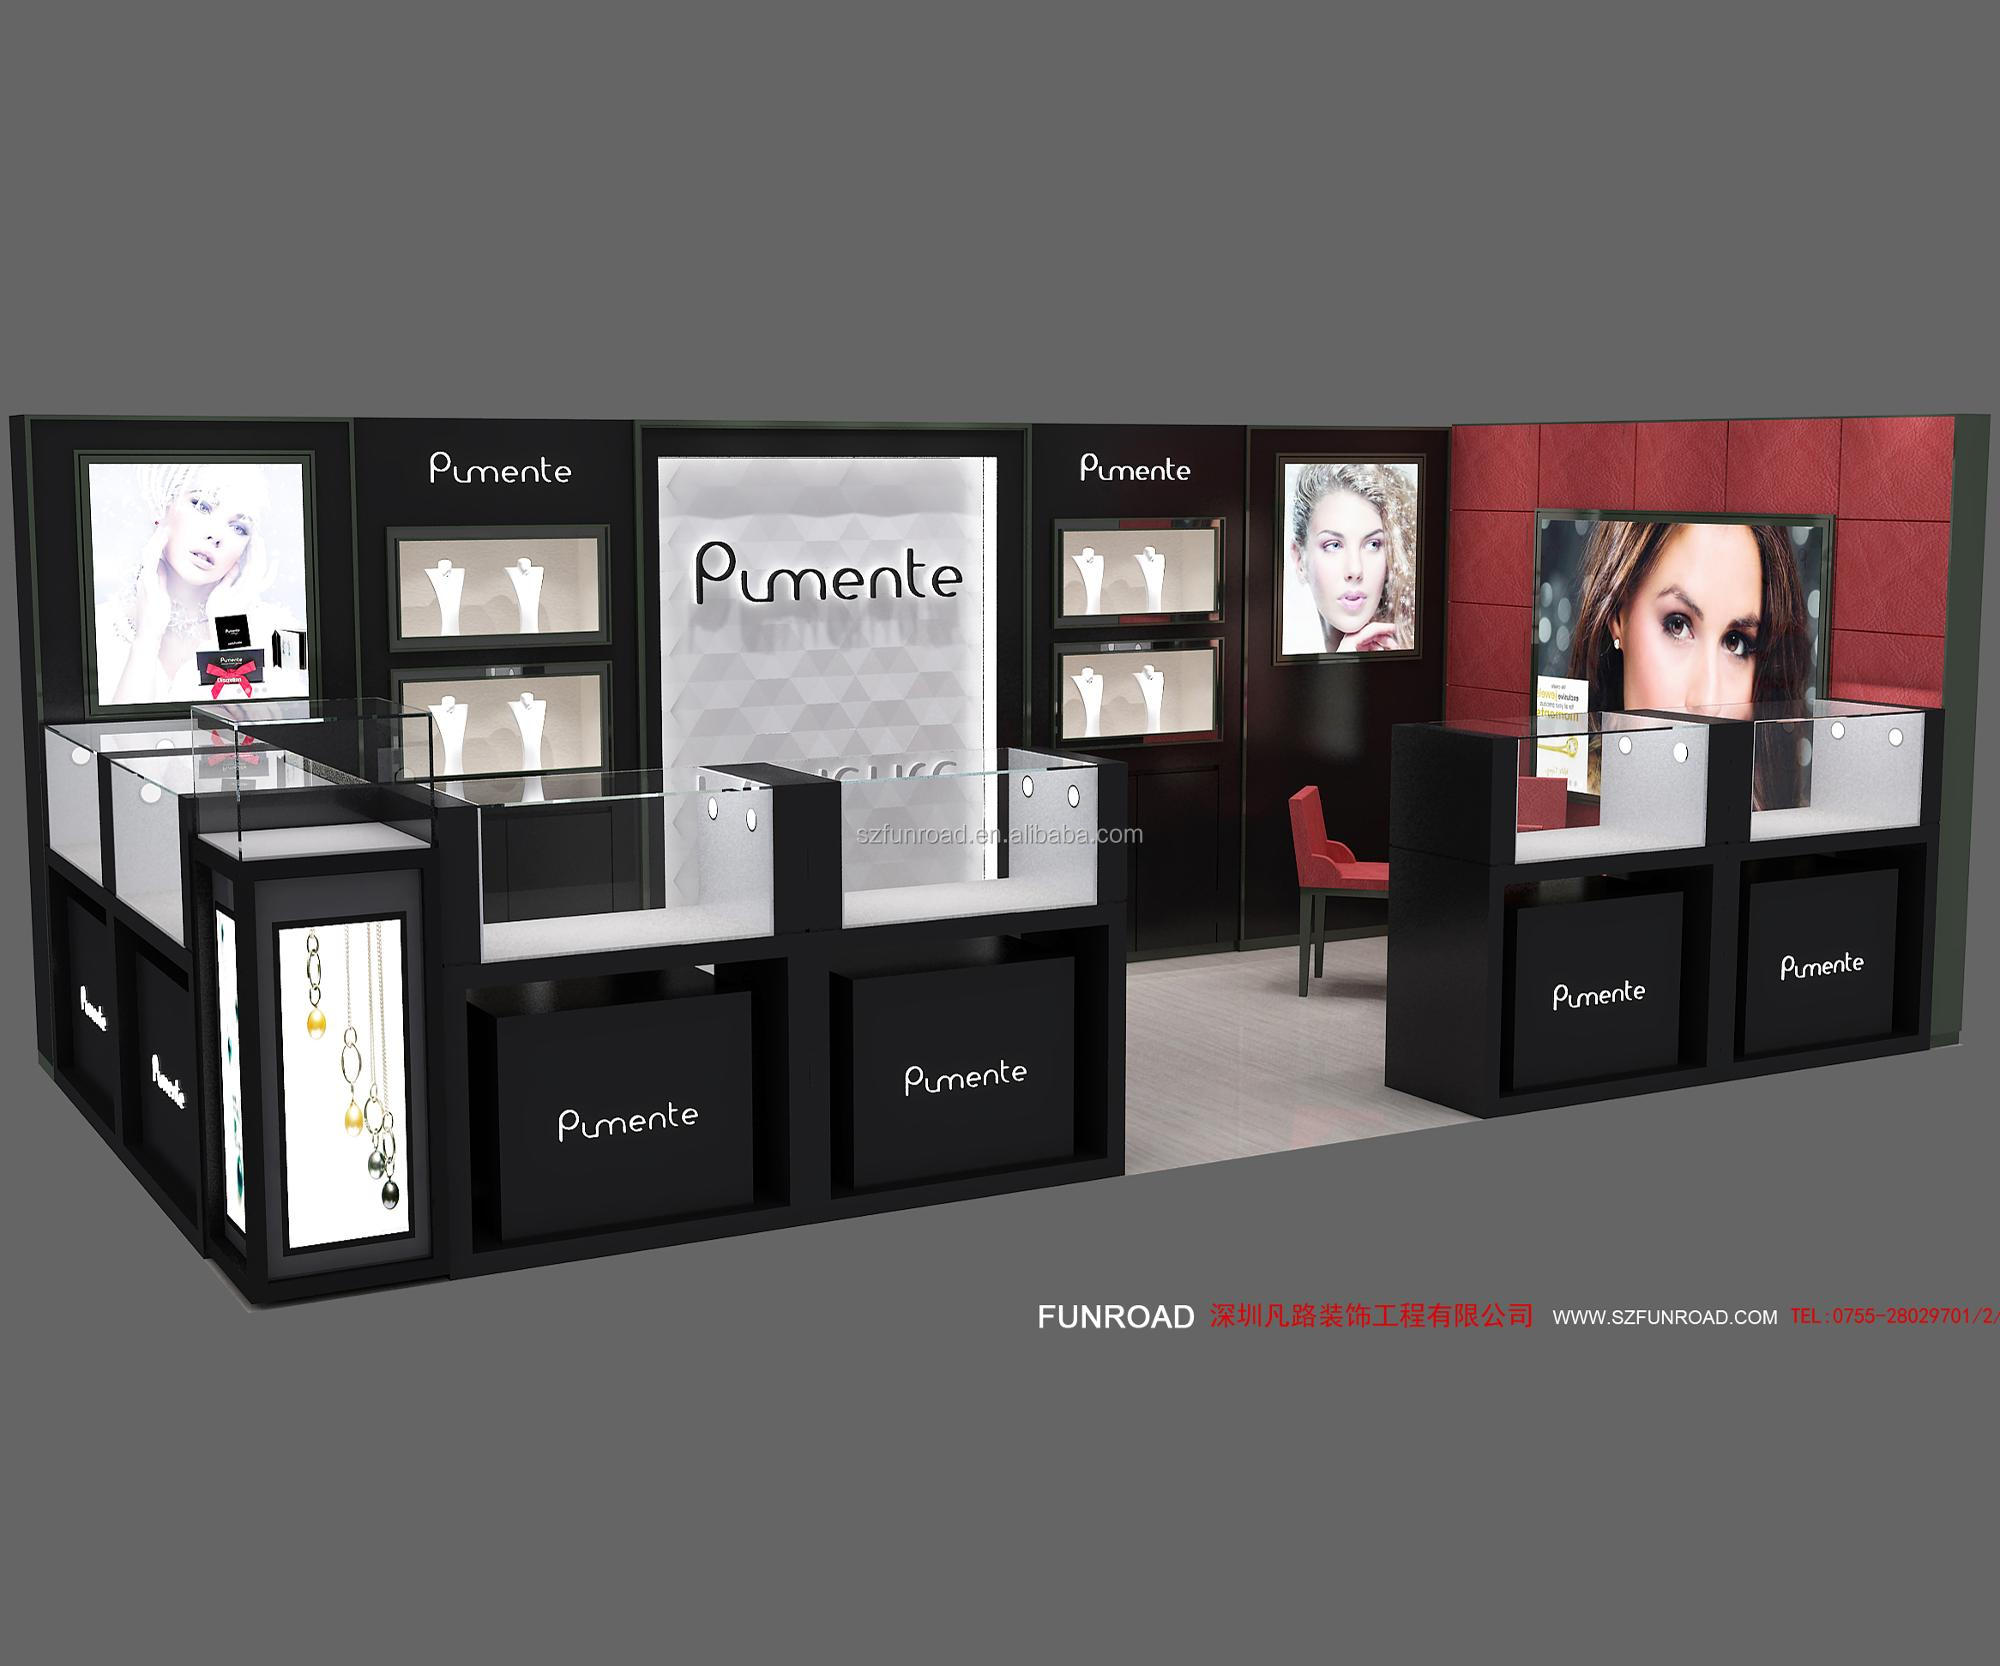 Wood jewelry display kiosk design for sale from Chinese manufacturer